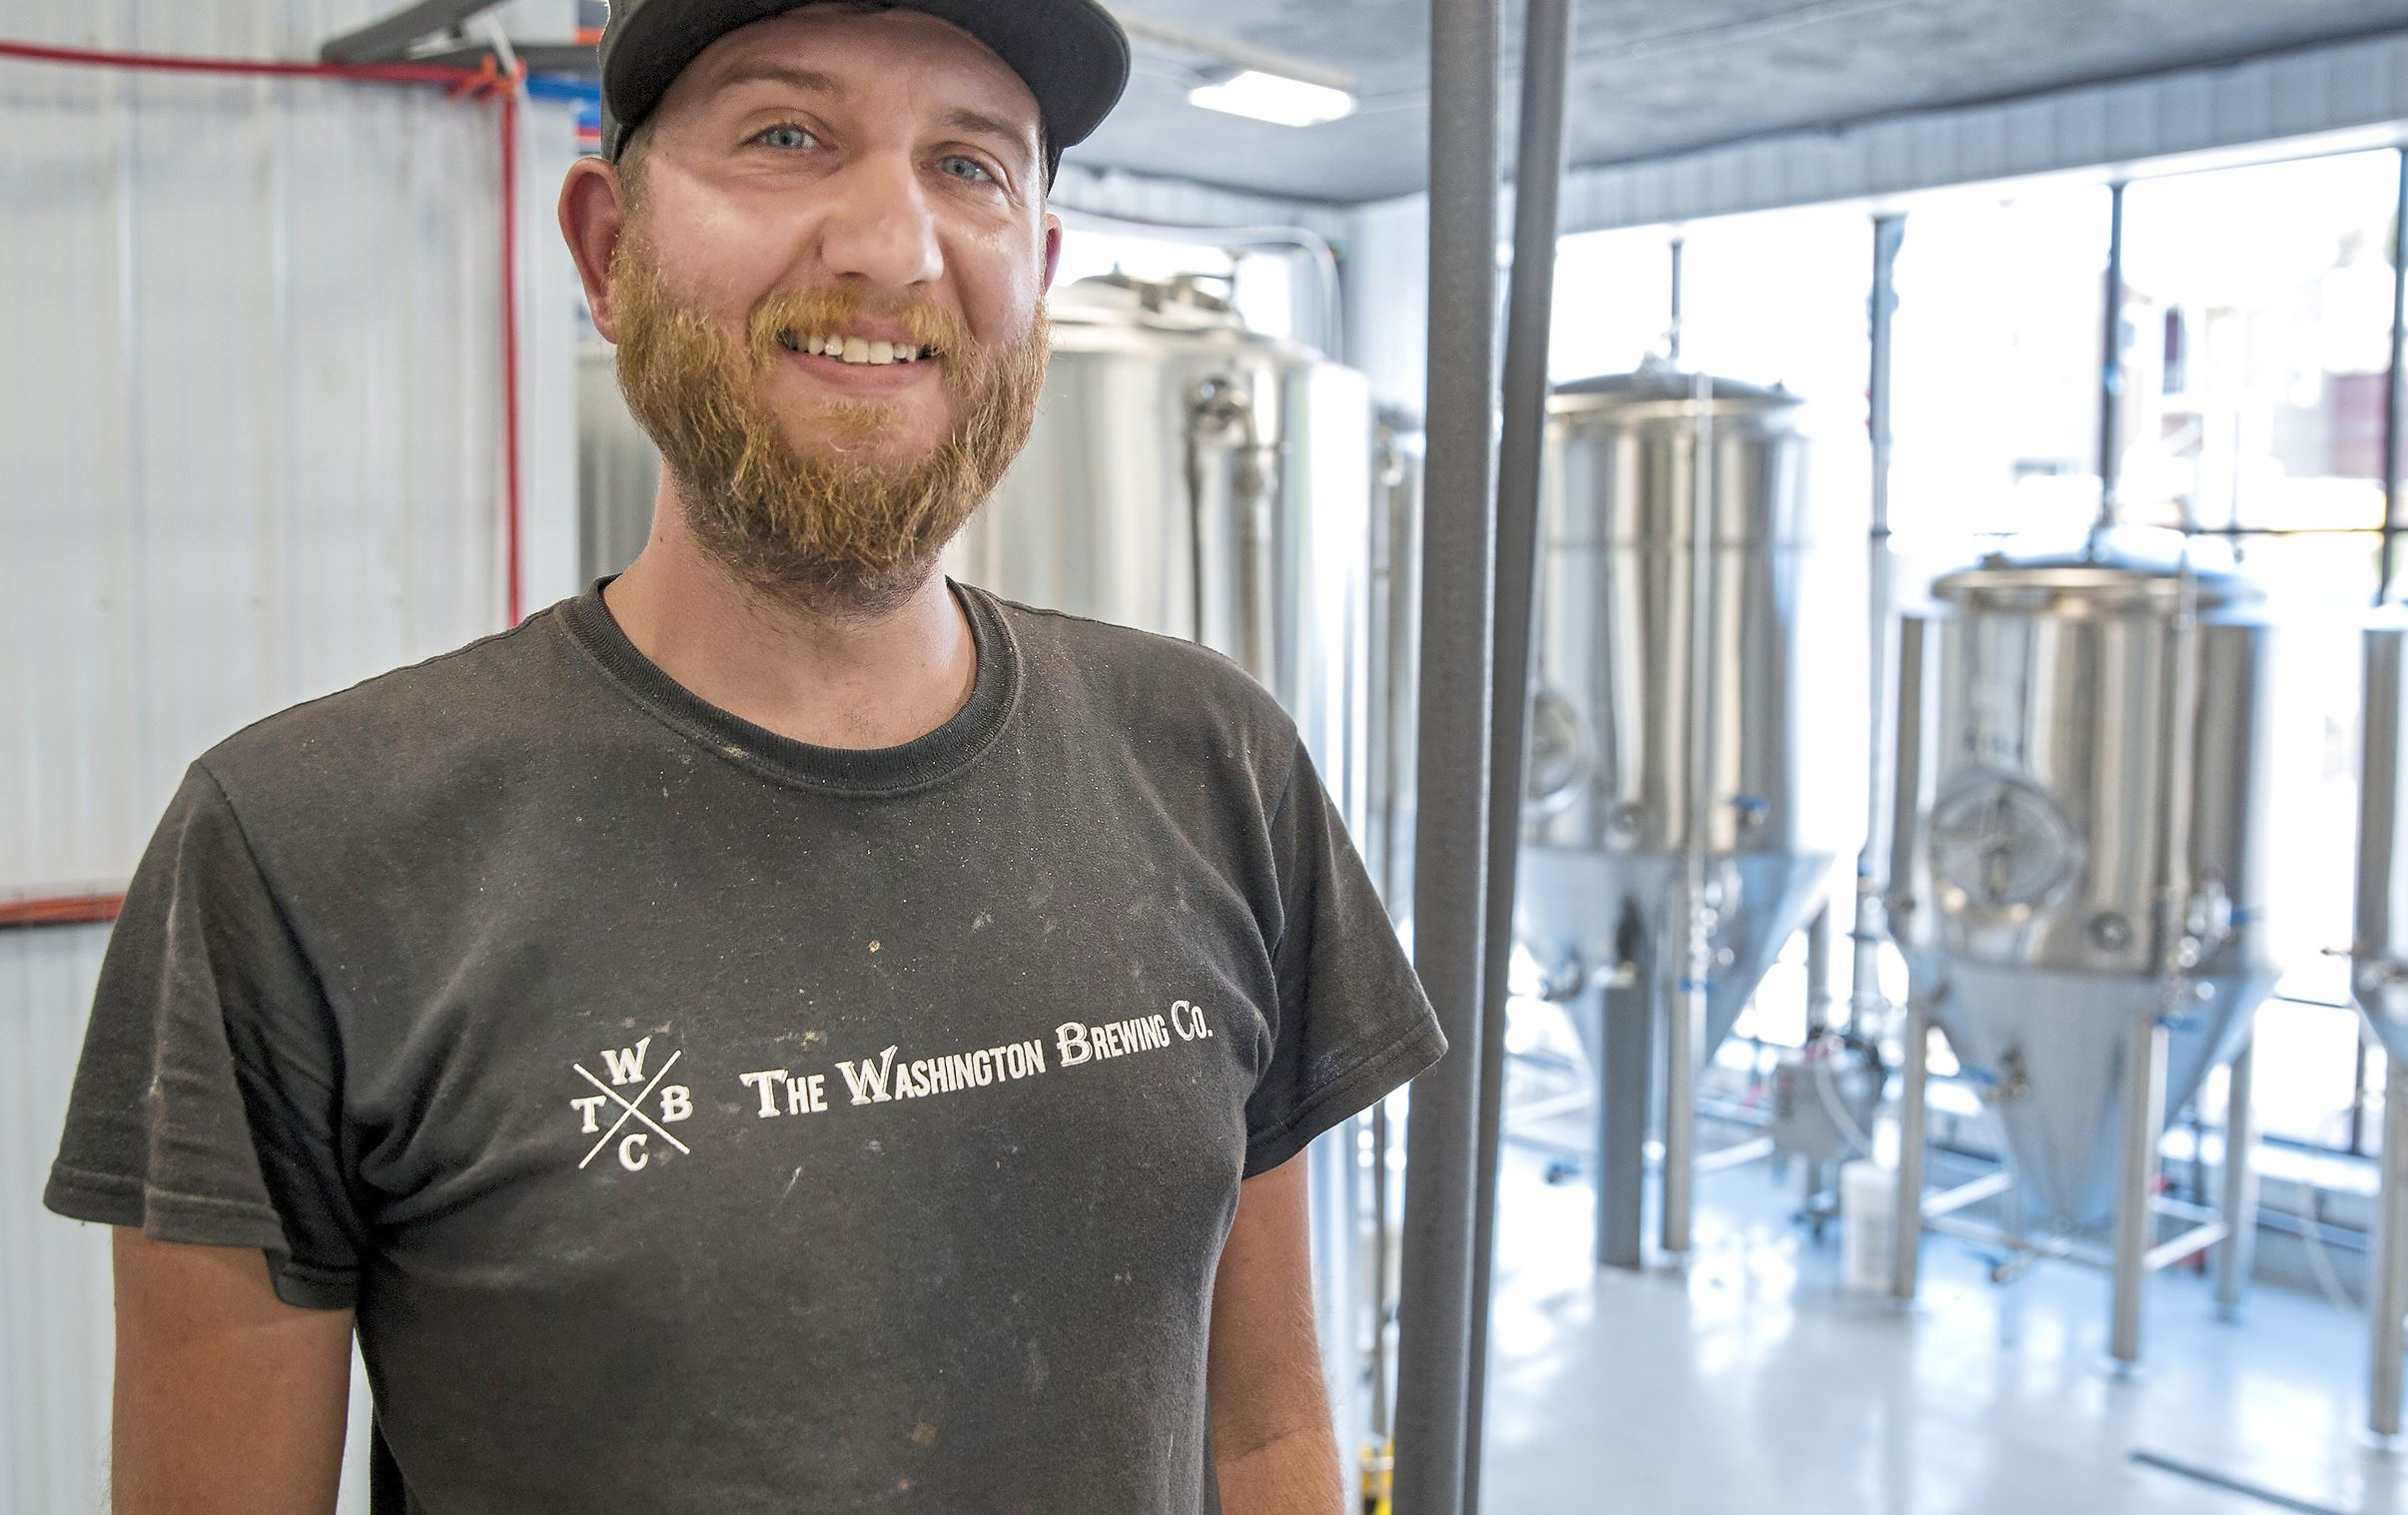 20170830acWashingtonBrewCo-02-1 Brandon Kolljeski, of Cecil, is one of the main brewers at the new Washington Brewing Co. set to open on Sept. 8 in Washington, Pa.